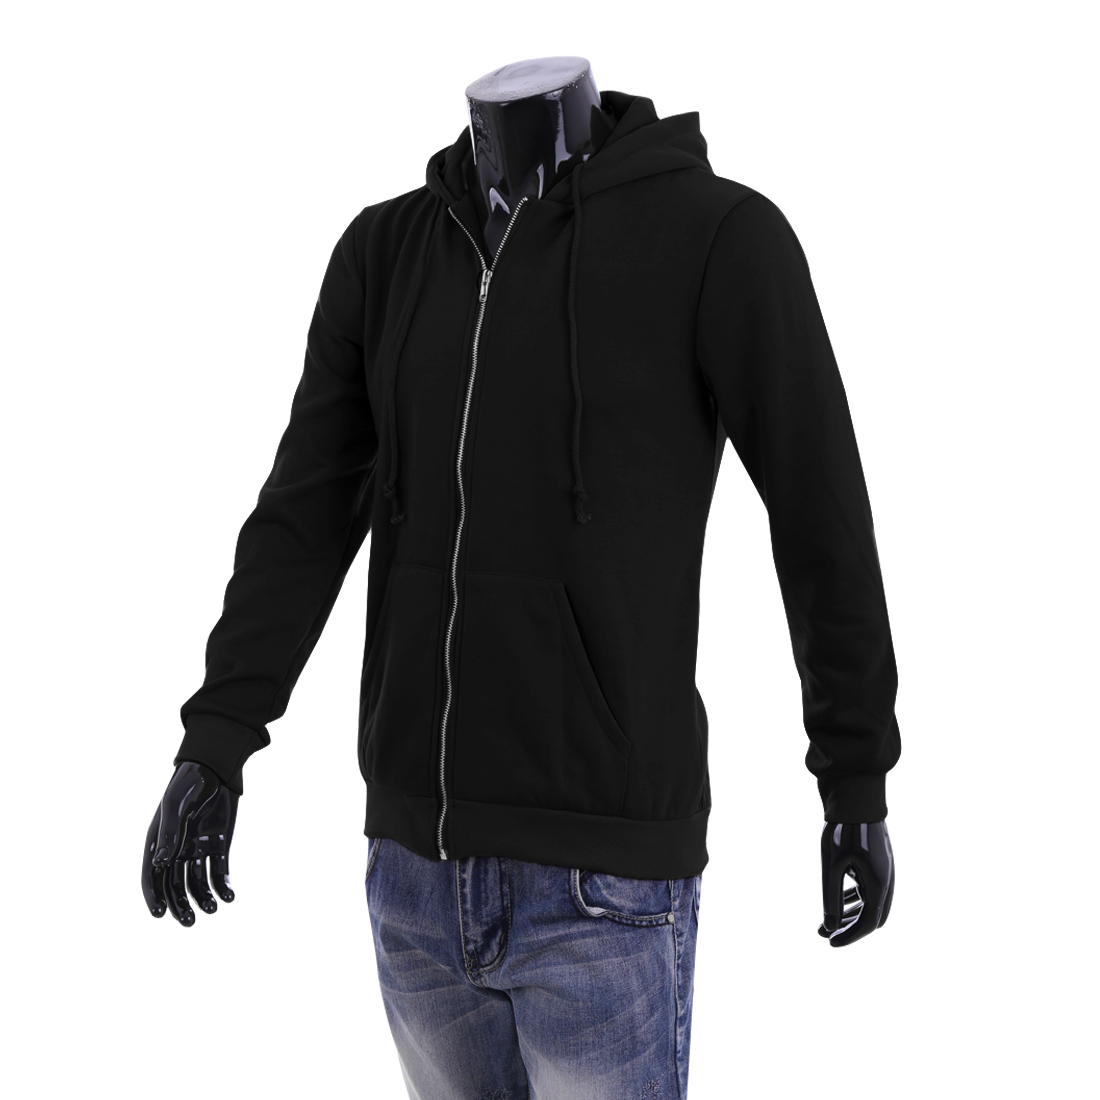 M Black Long Sleeve Fashionable Two Pockets Front Hoodie Jacket for Men